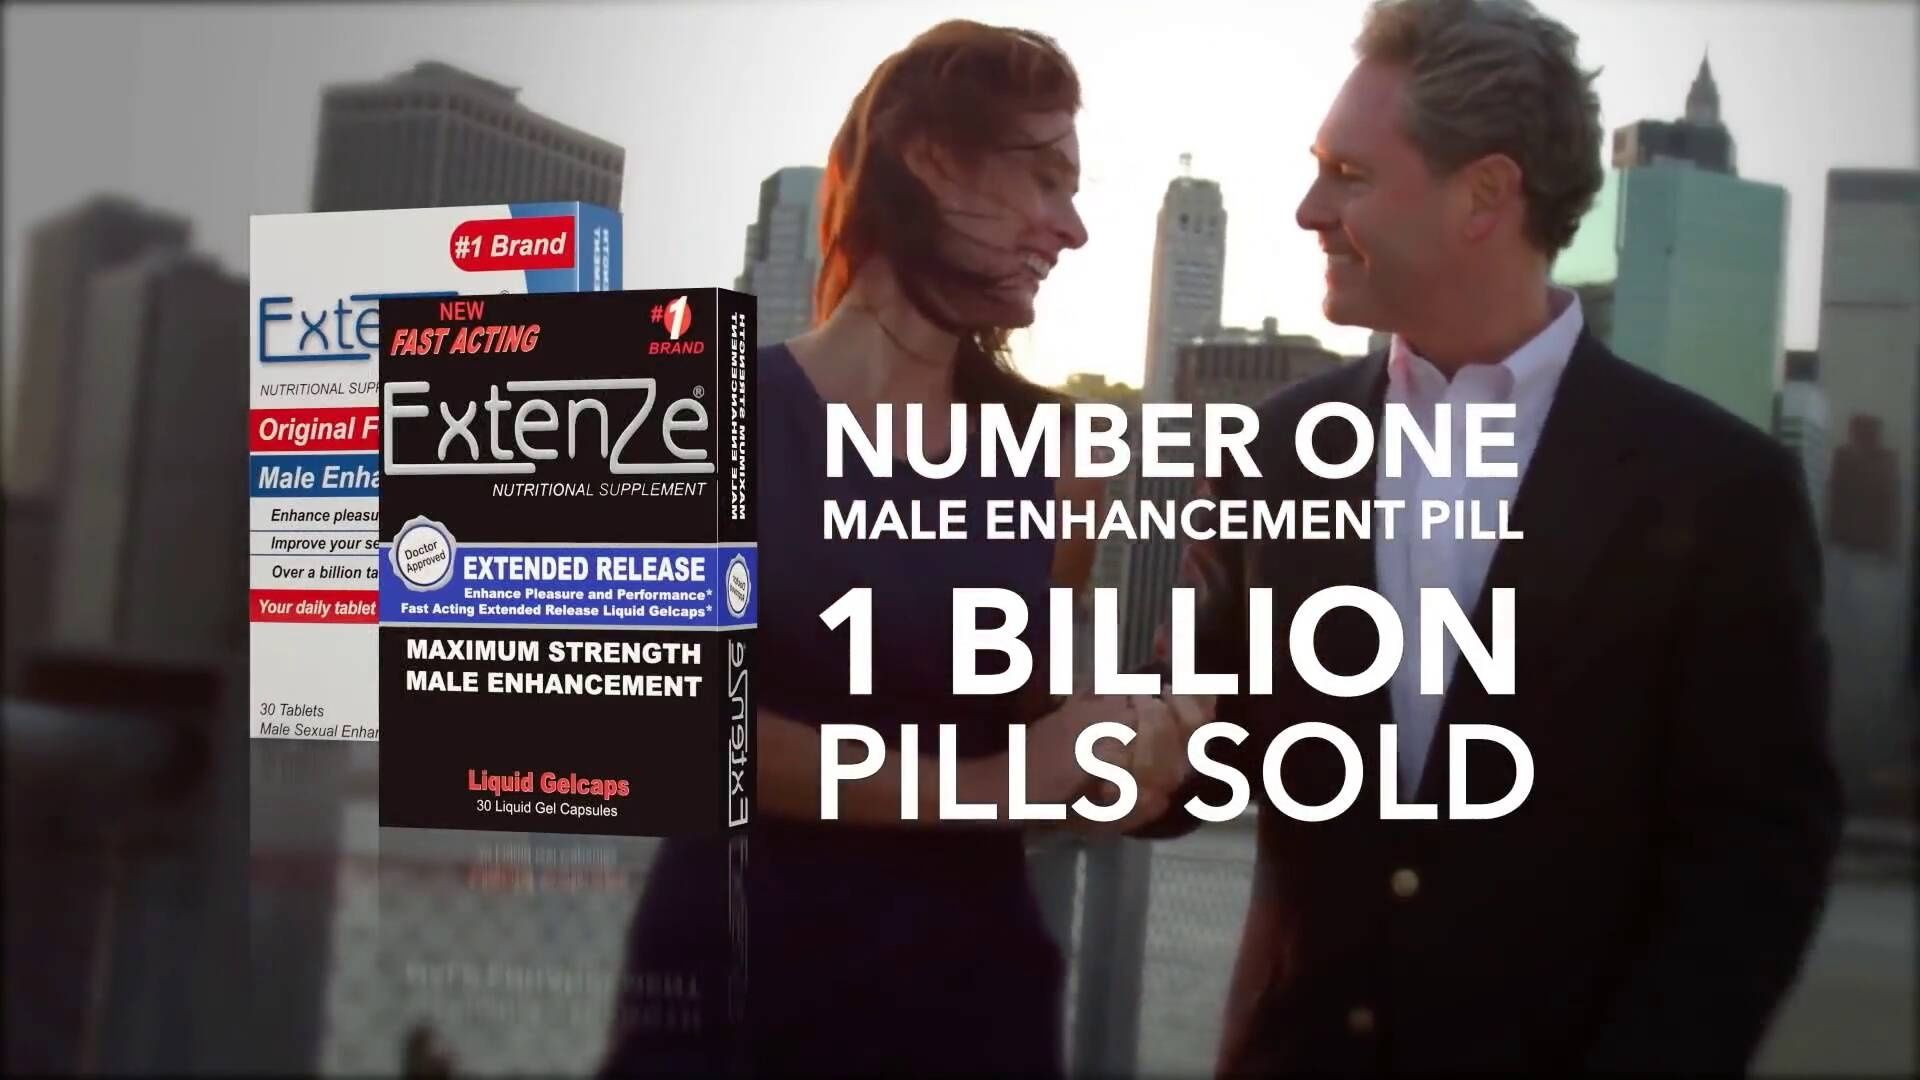 Buy ExtenZe Pills Online - The All Natural Male